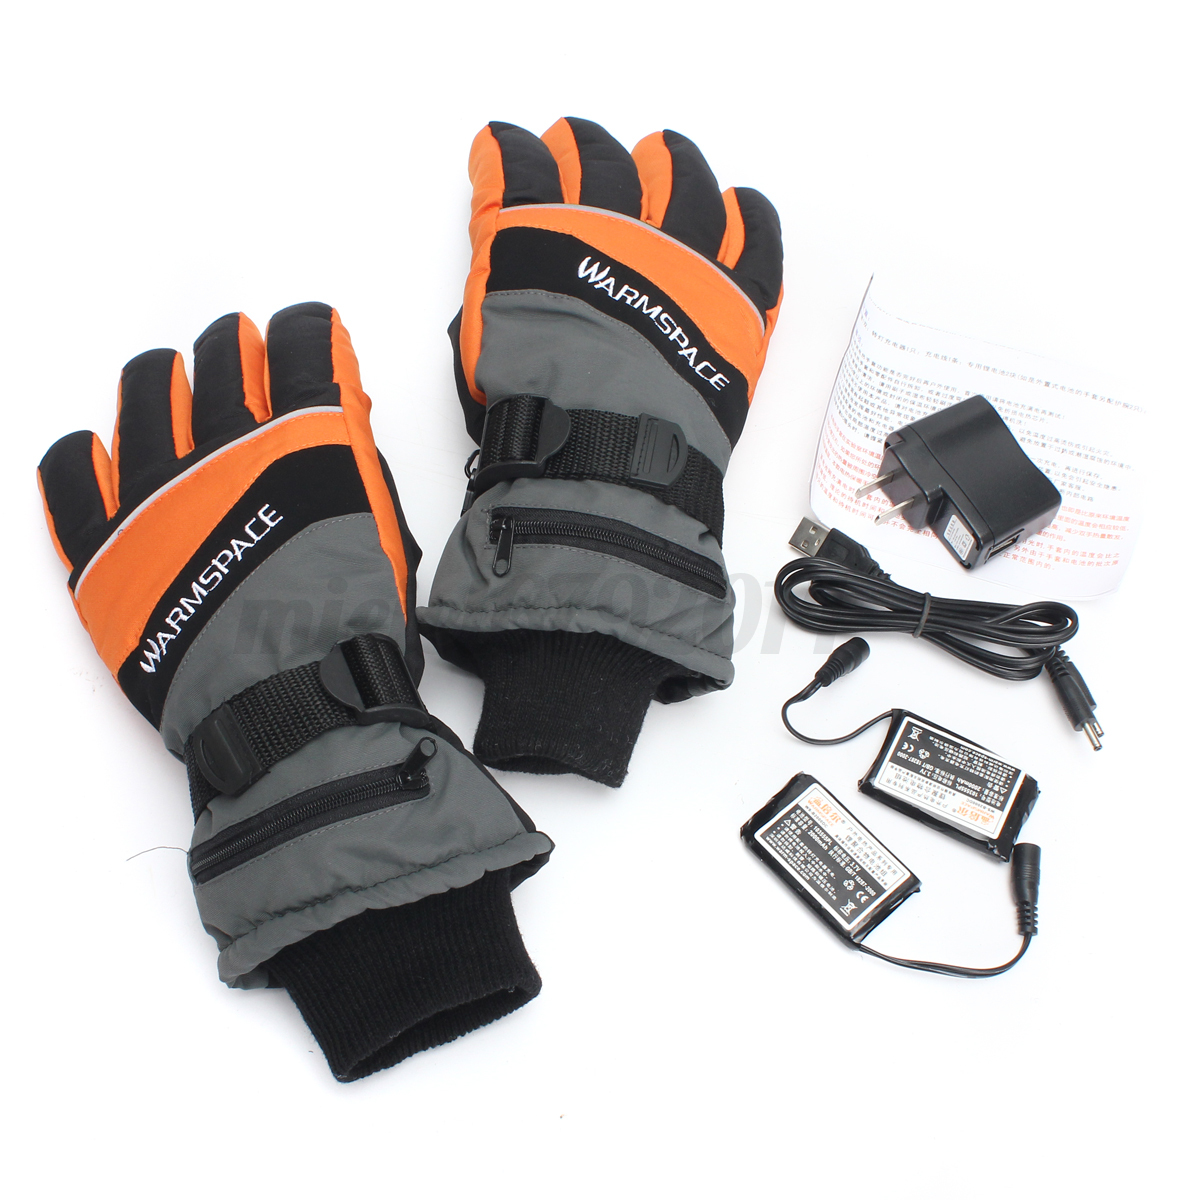 Battery Heat For Outside : Motorcycle outdoor work electric heated gloves